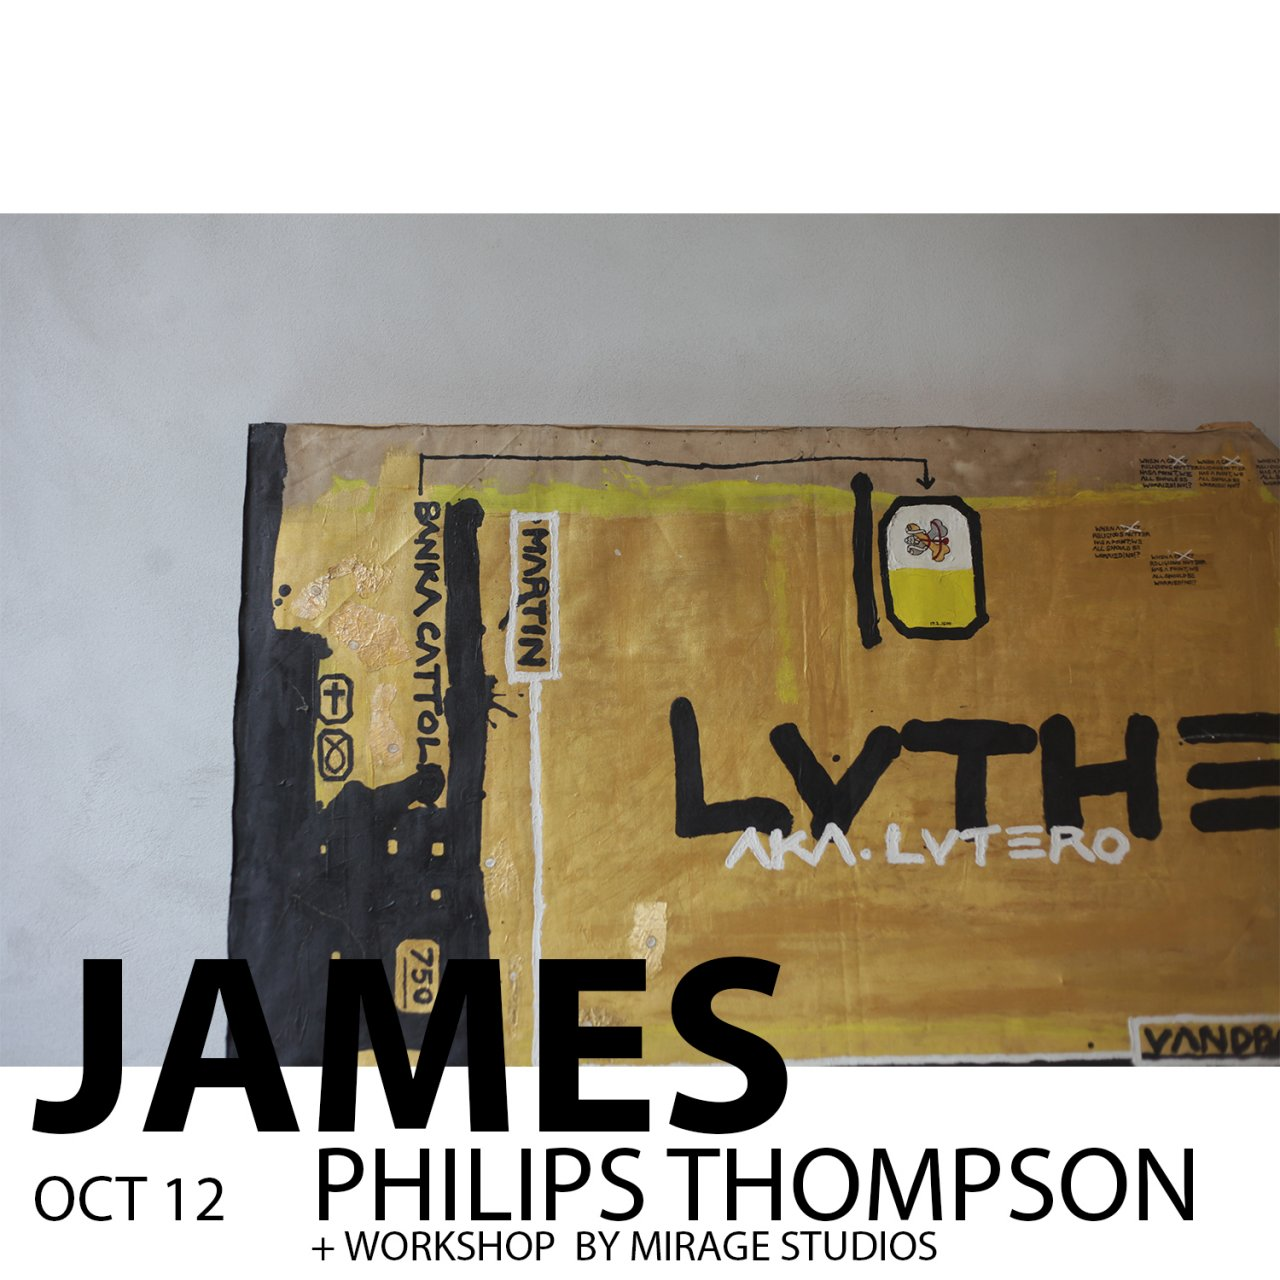 JAMES THOMPSON 24hrs WINDOW EXHIBITION + WORKSHOPS BY MIRAGE STUDIOS